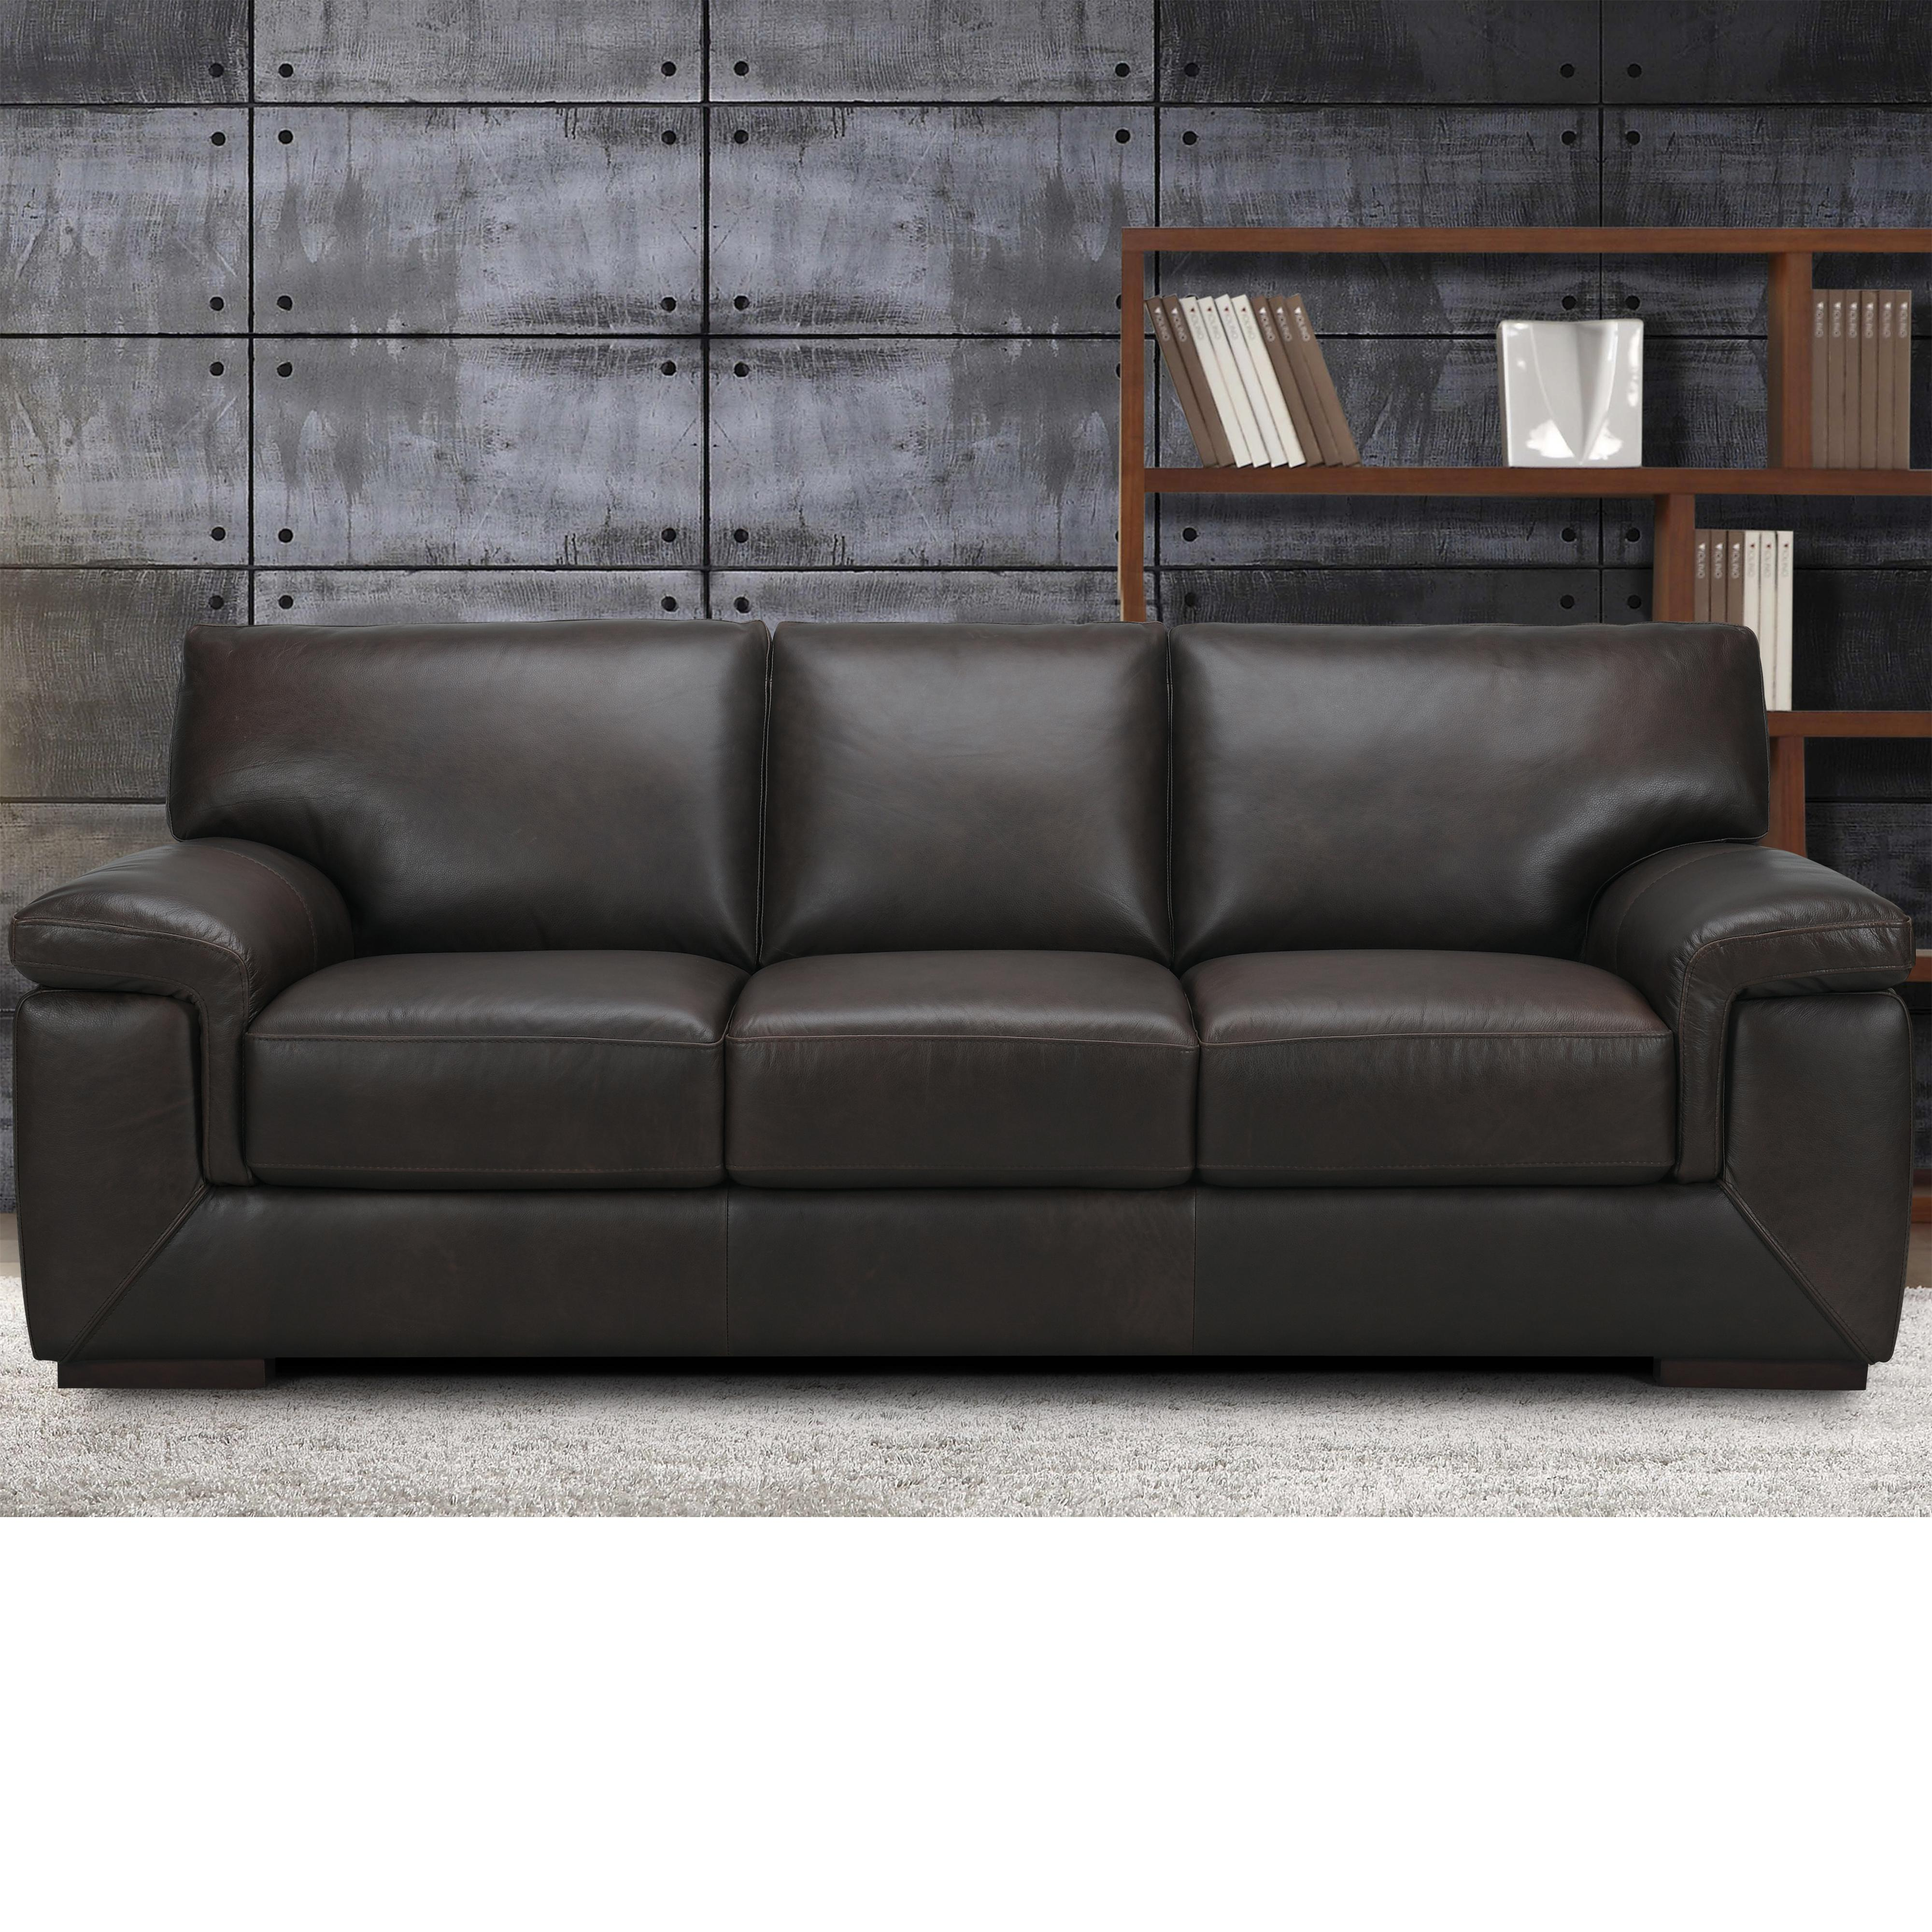 3576 Casual Sofa by Violino at Furniture Superstore - Rochester, MN